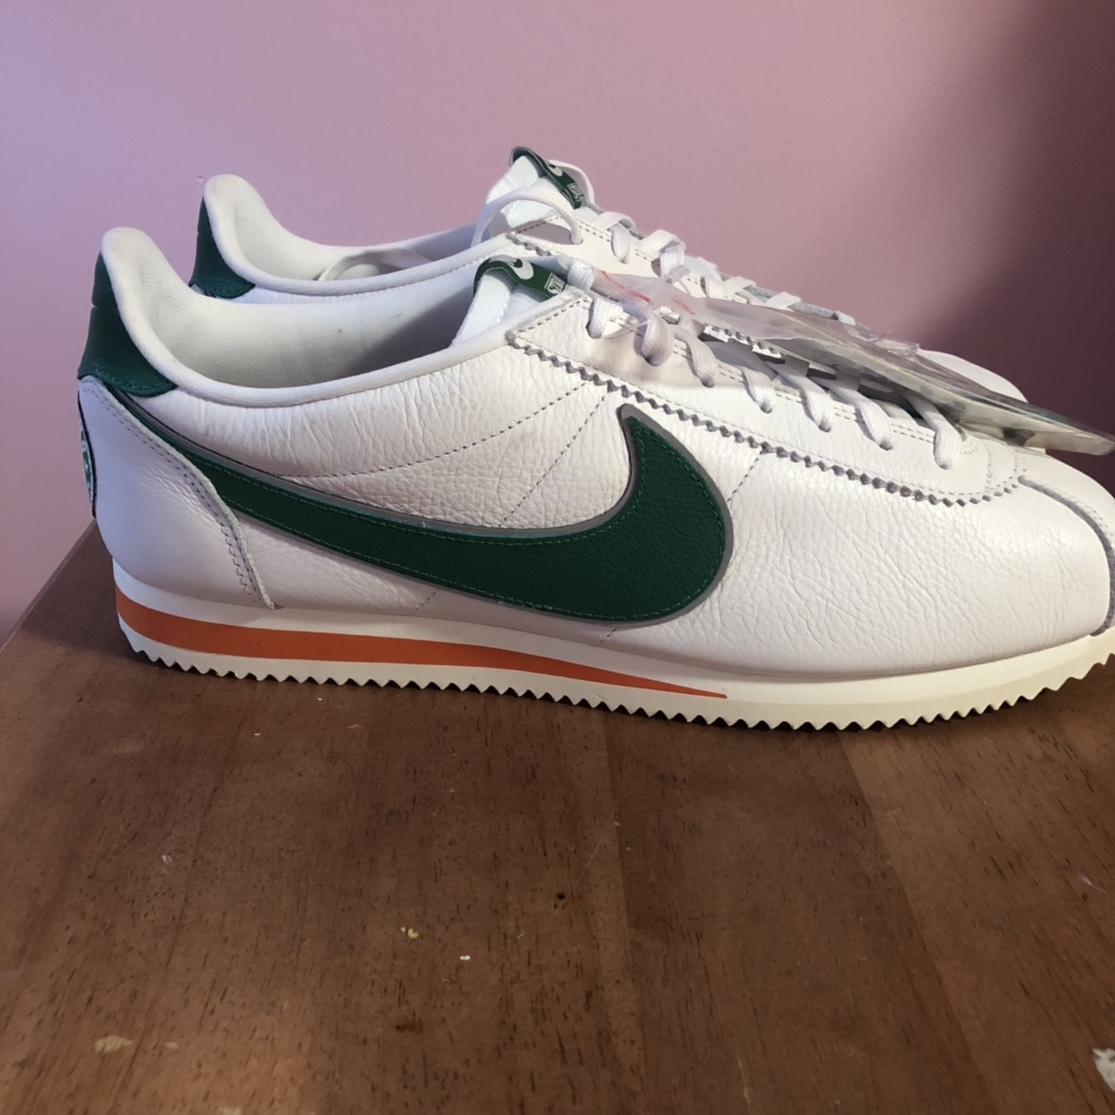 los angeles 29cdd 85615 Stranger Things X Nike Cortez